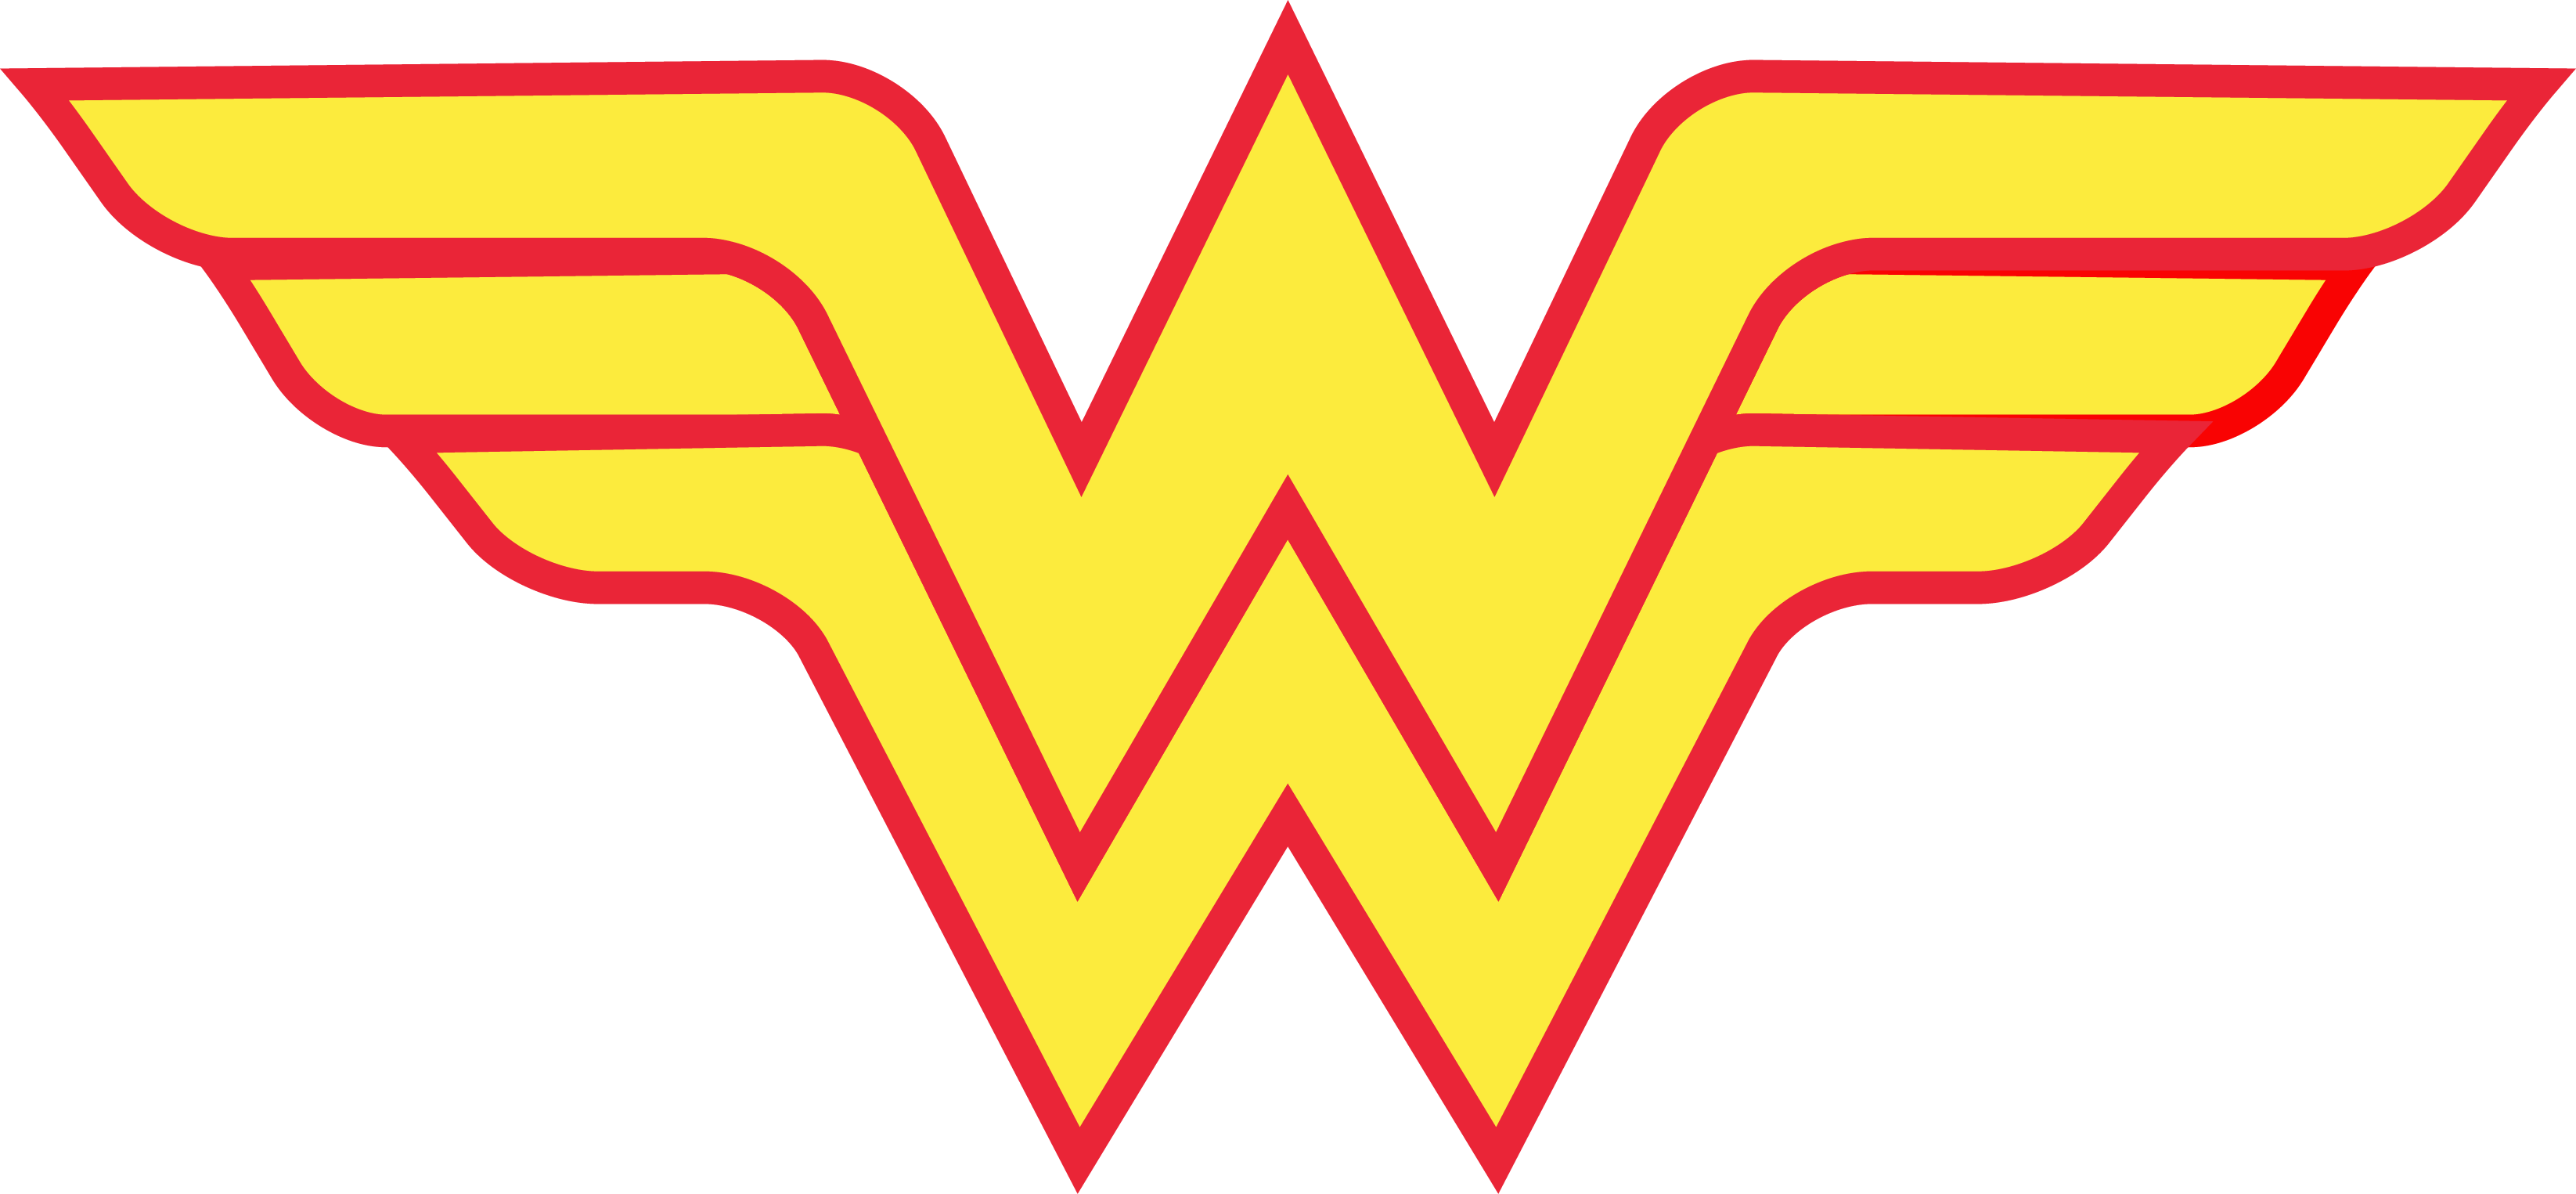 2034 Wonder Woman free clipart.